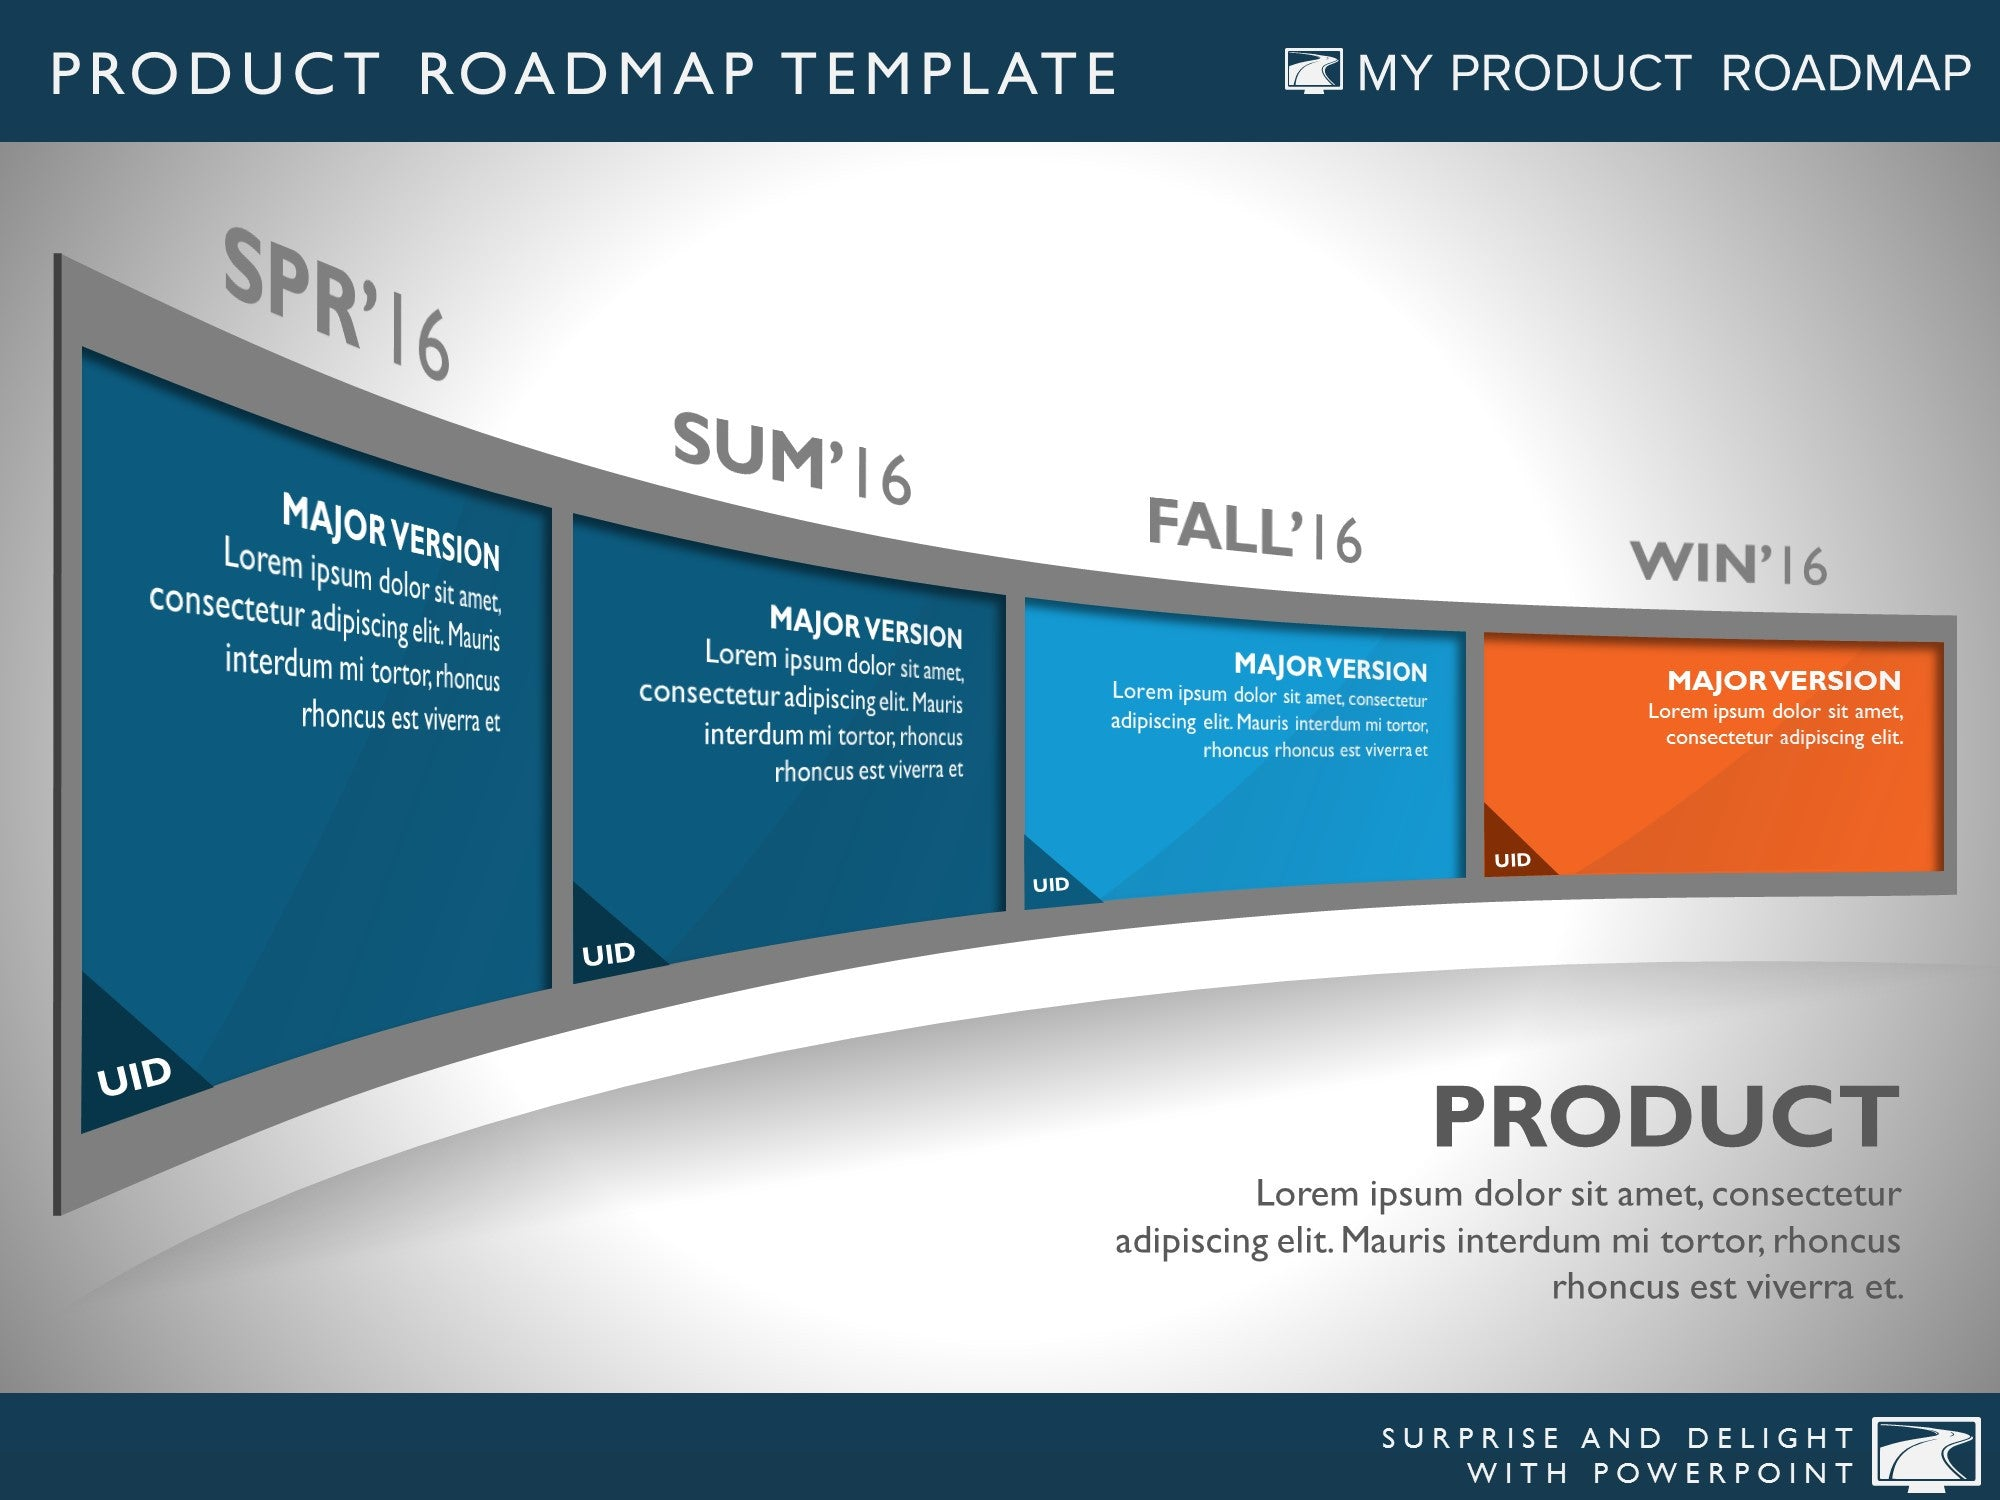 Product roadmaps and timelines for Powerpoint – My Product Roadmap